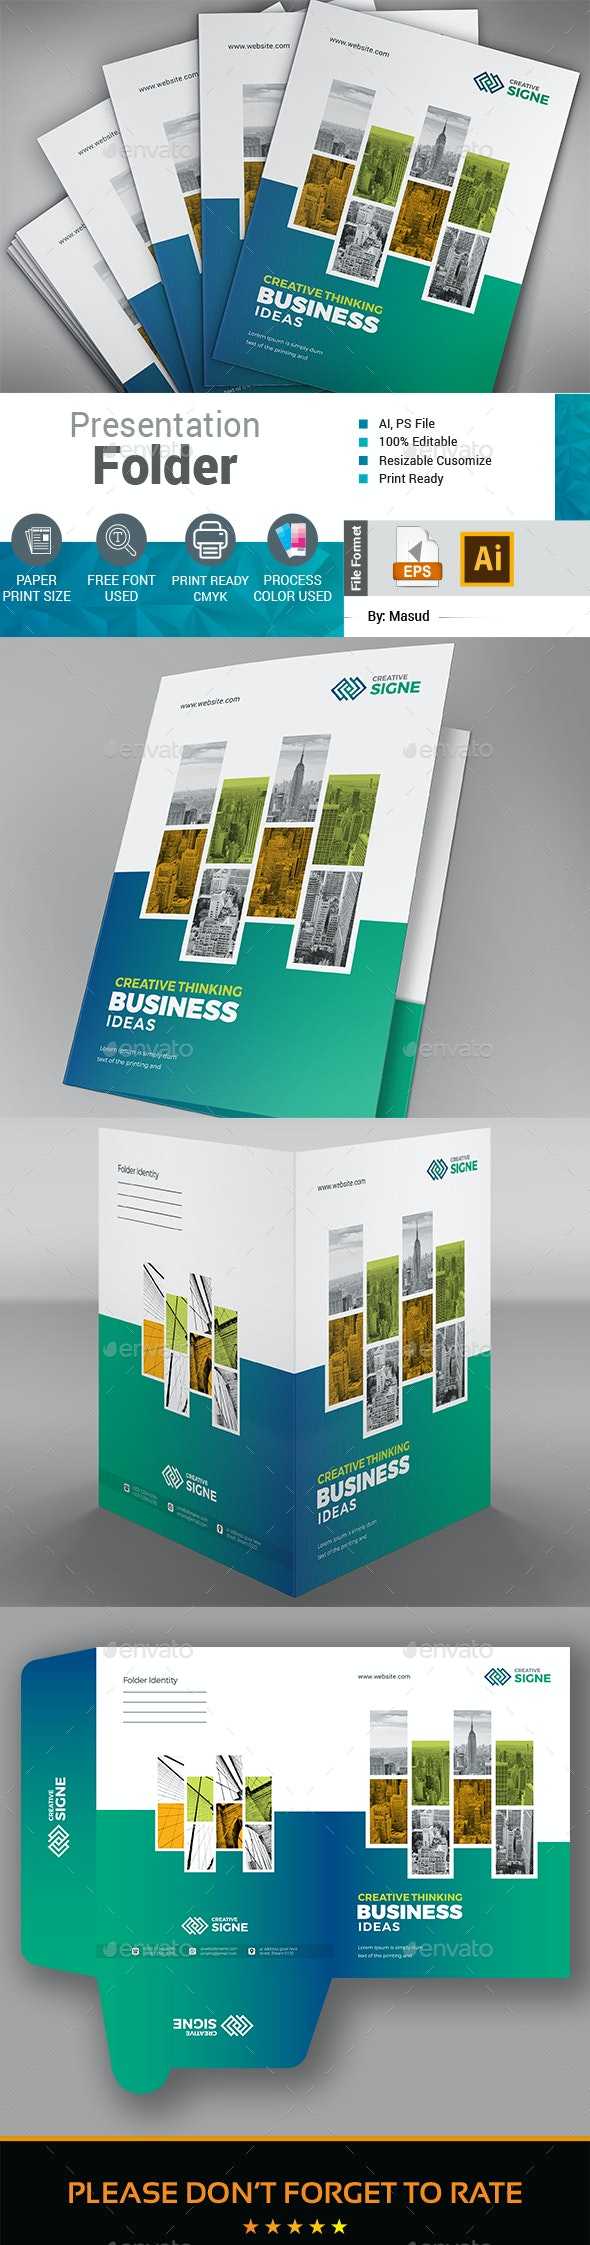 Business Presentation Folder - Stationery Print Templates